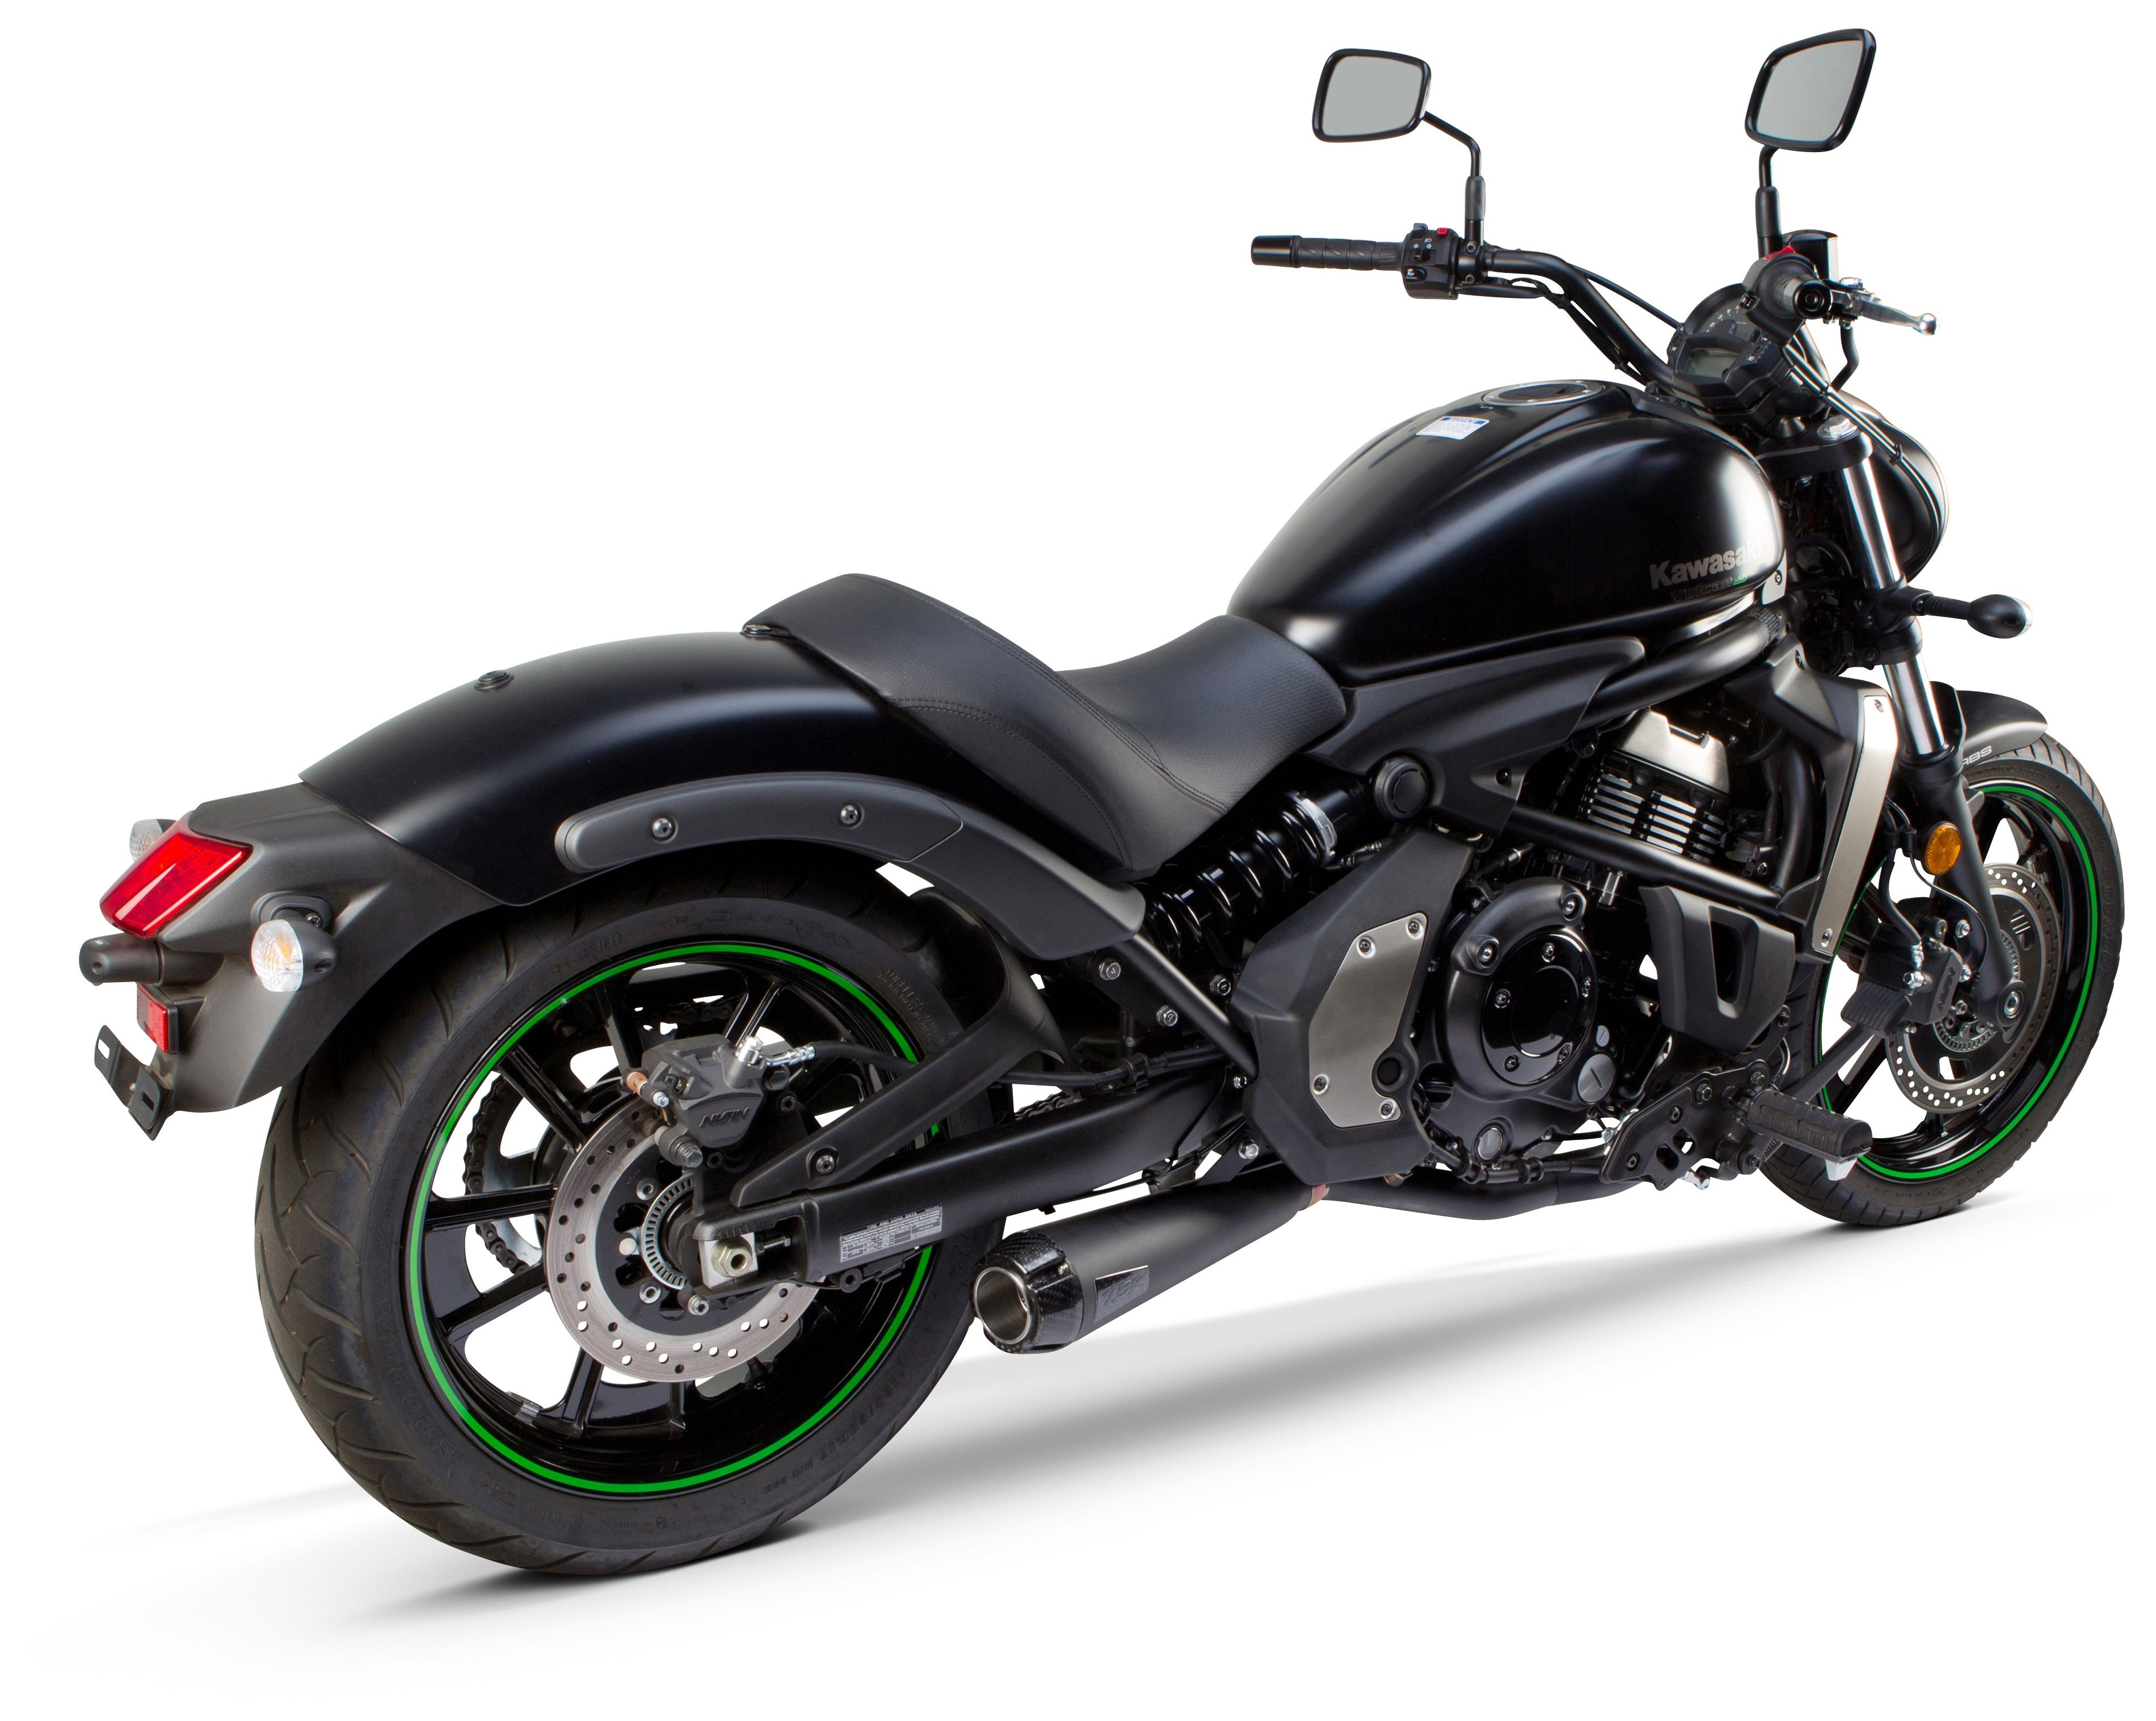 Two Brothers Comp S Exhaust System Kawasaki Vulcan S 2015 2019 15